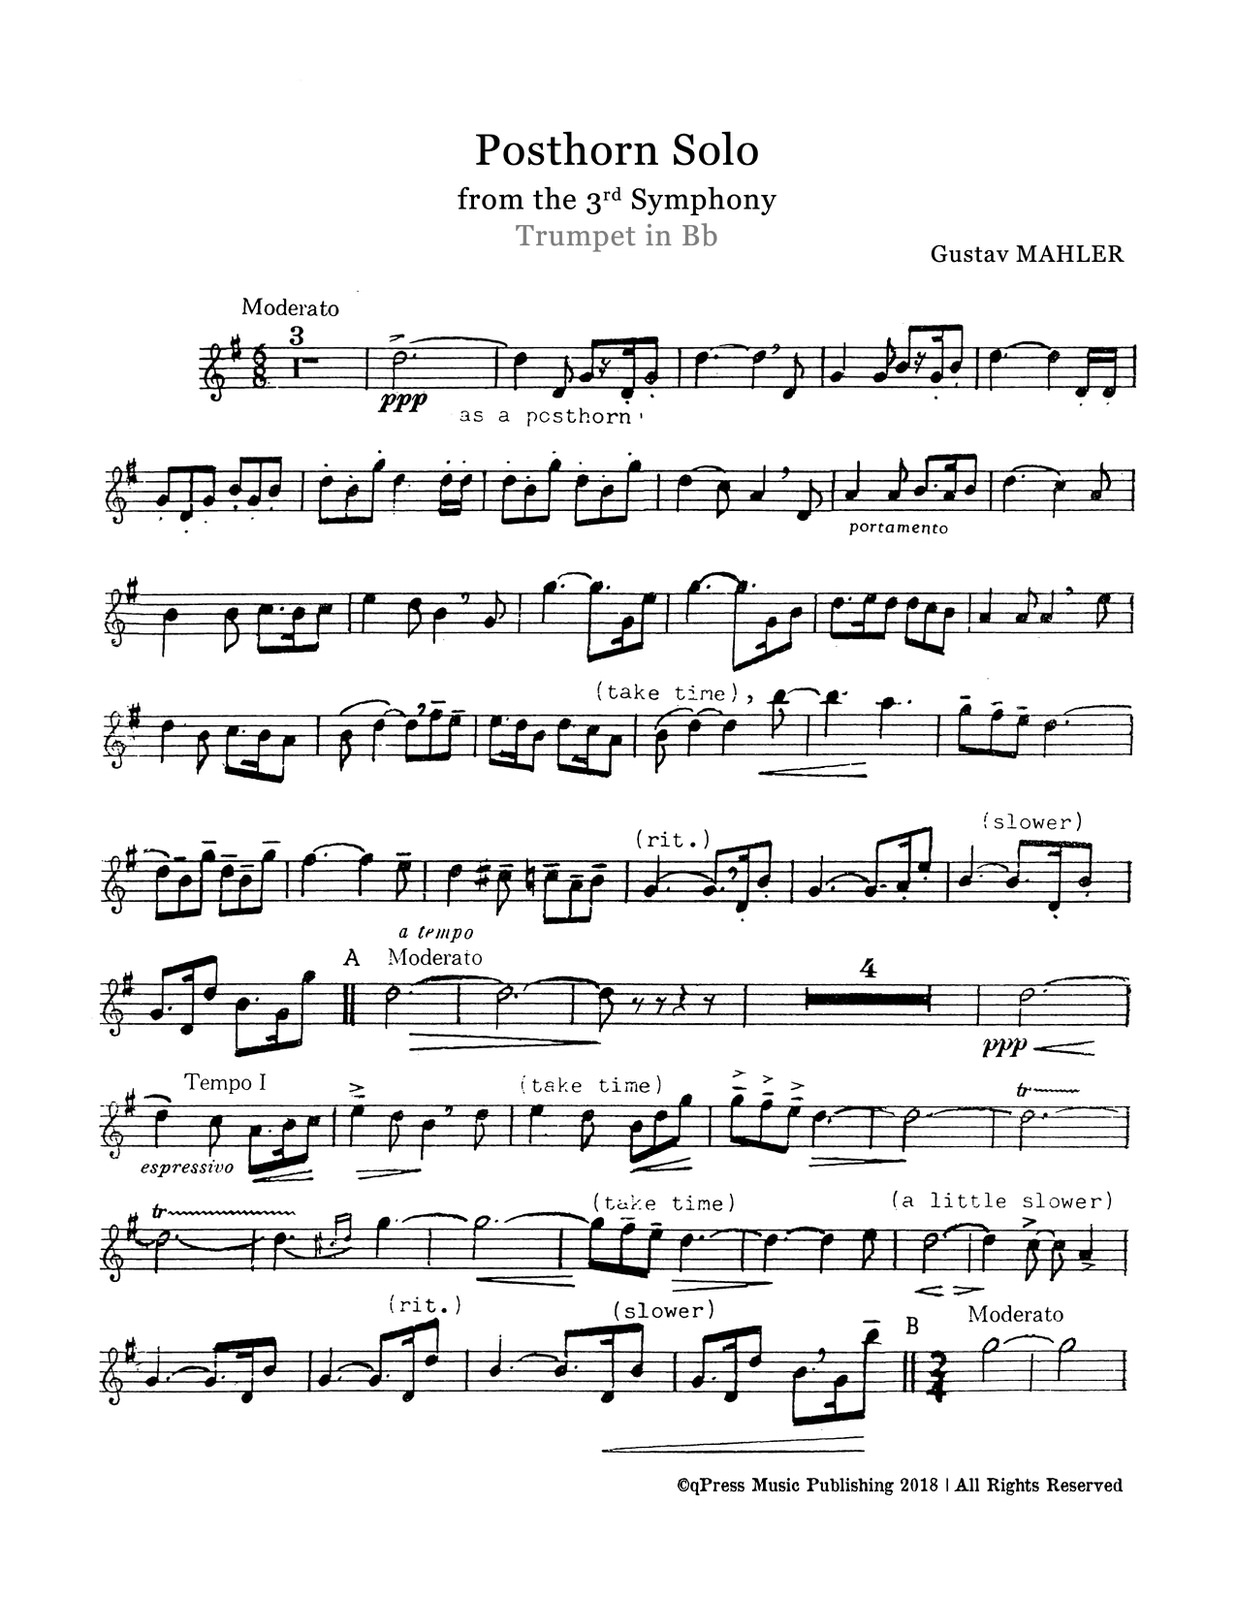 Posthorn Solo for Trumpet and Piano by Mahler, Gustav   qPress